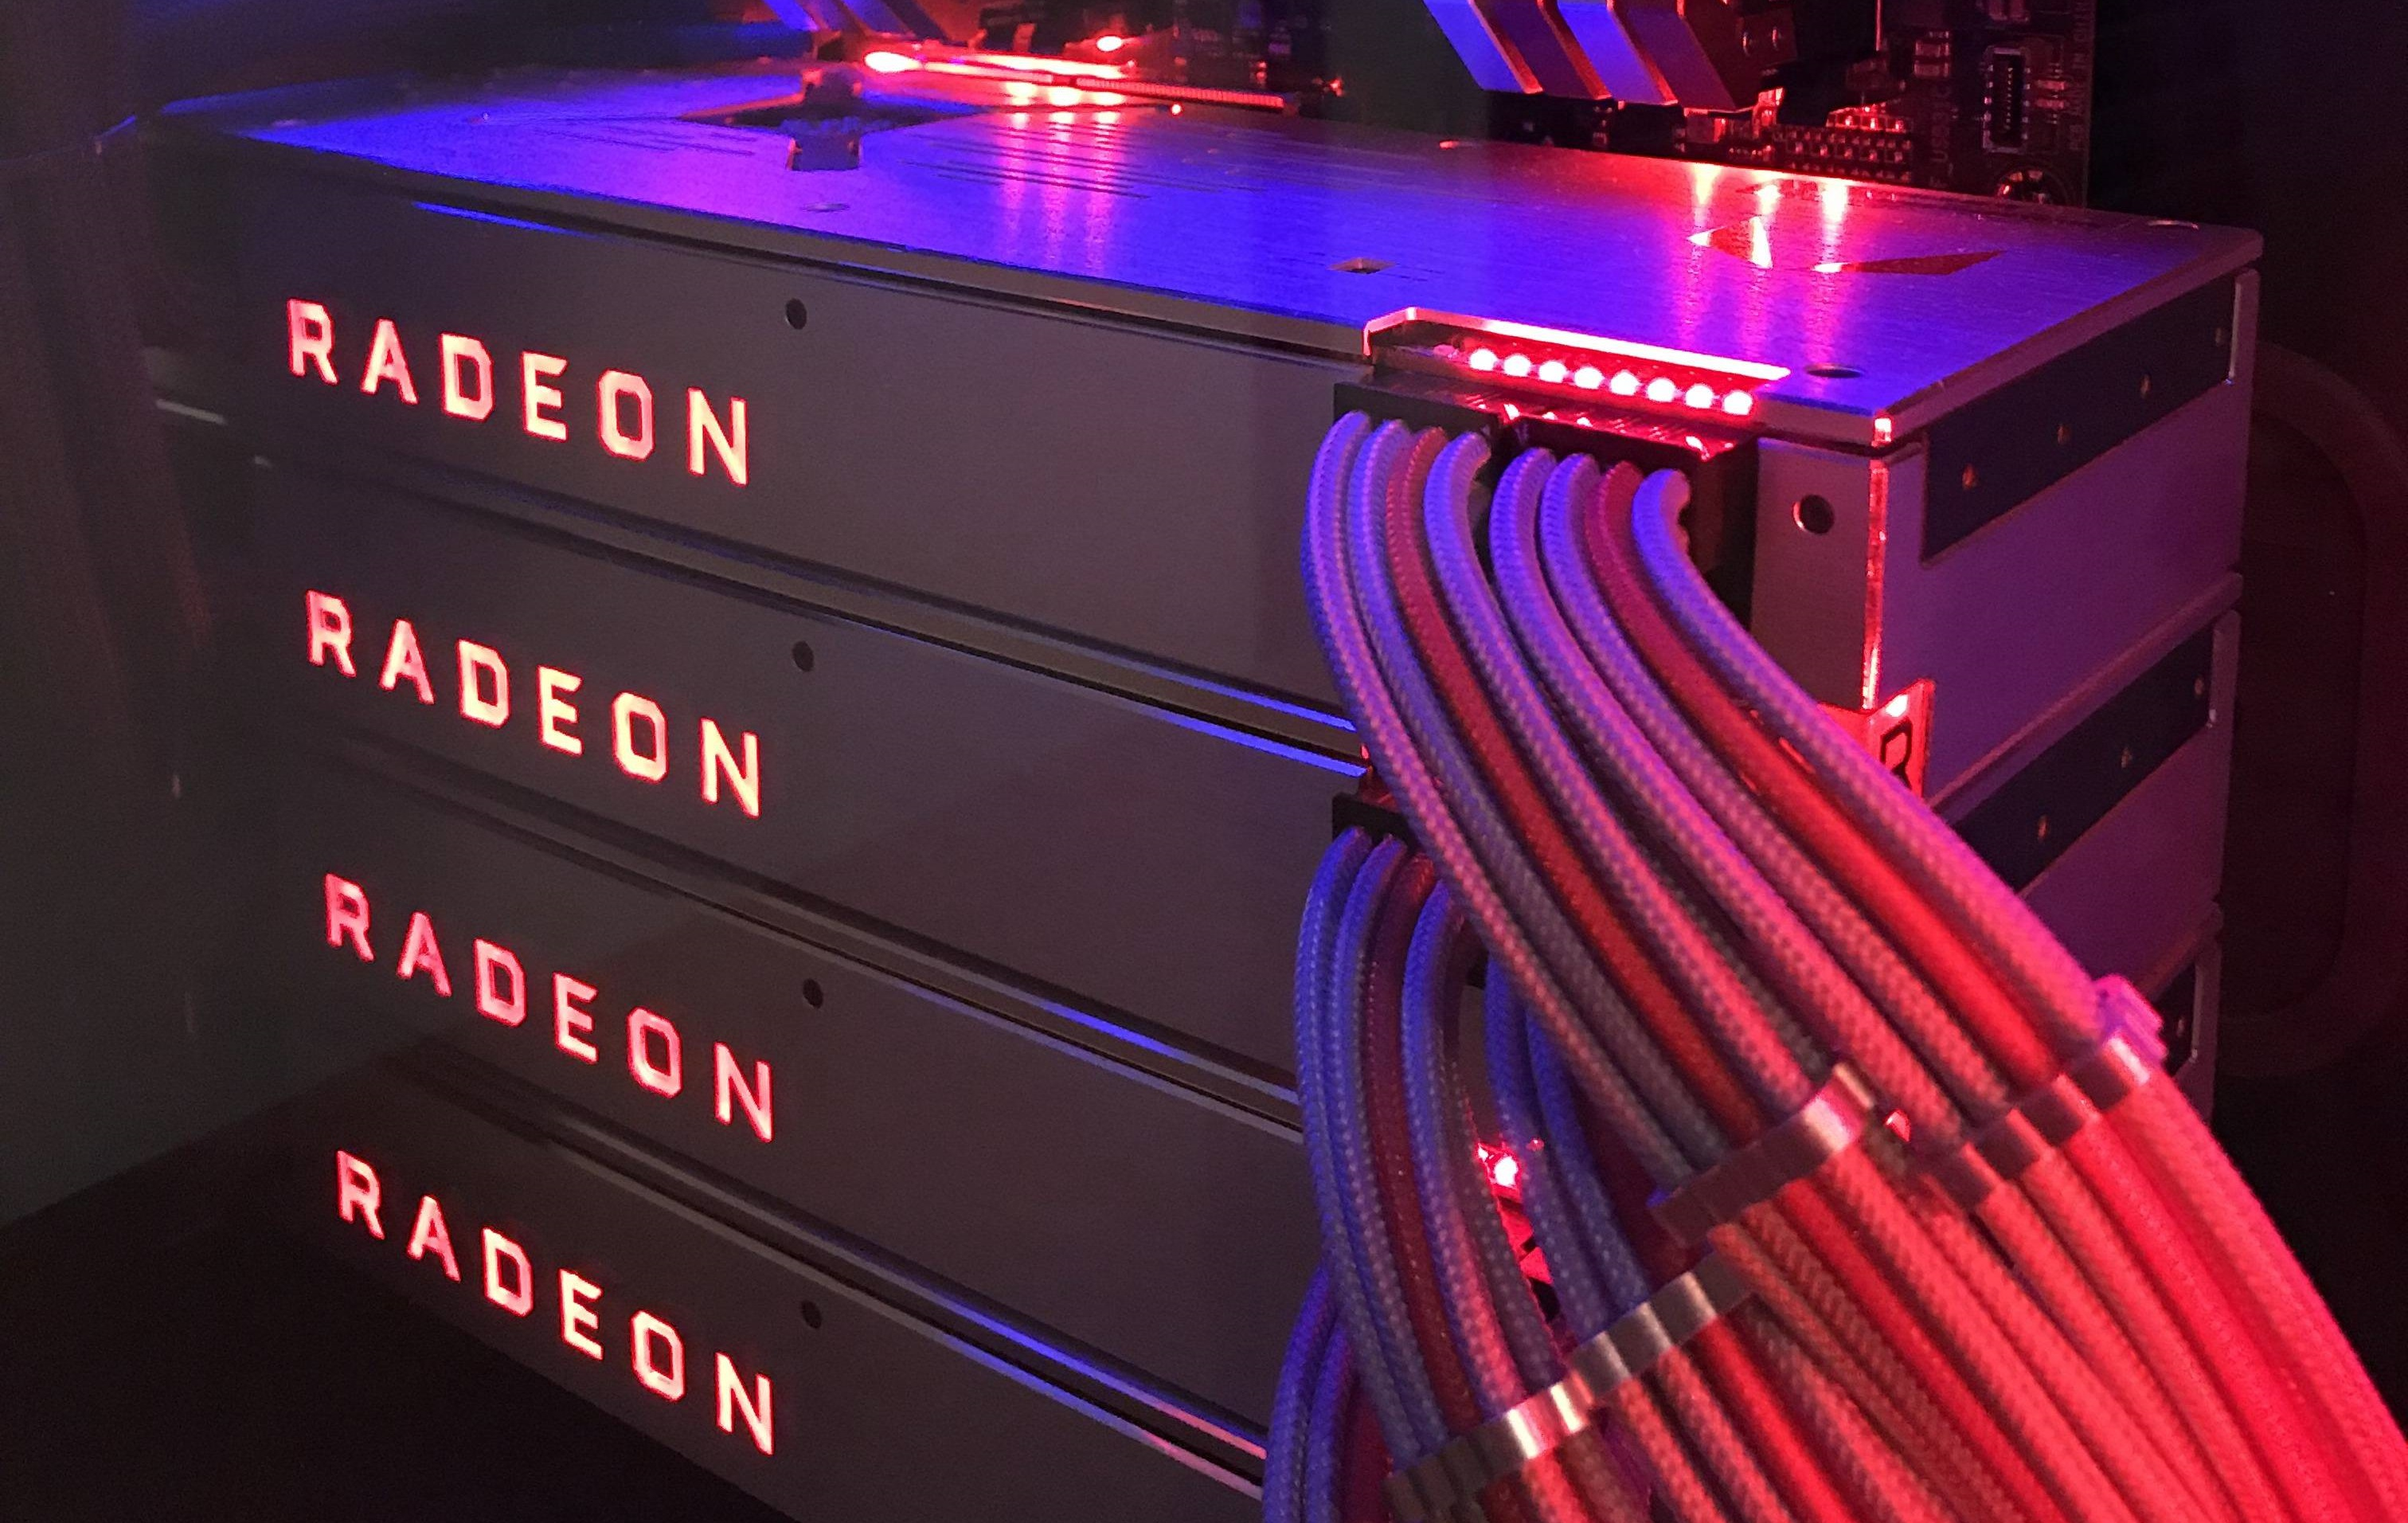 Amd Fan Amazes The Red Team With Custom Build Pc Featuring Four Radeon Rx Vega 64 Lc Graphics